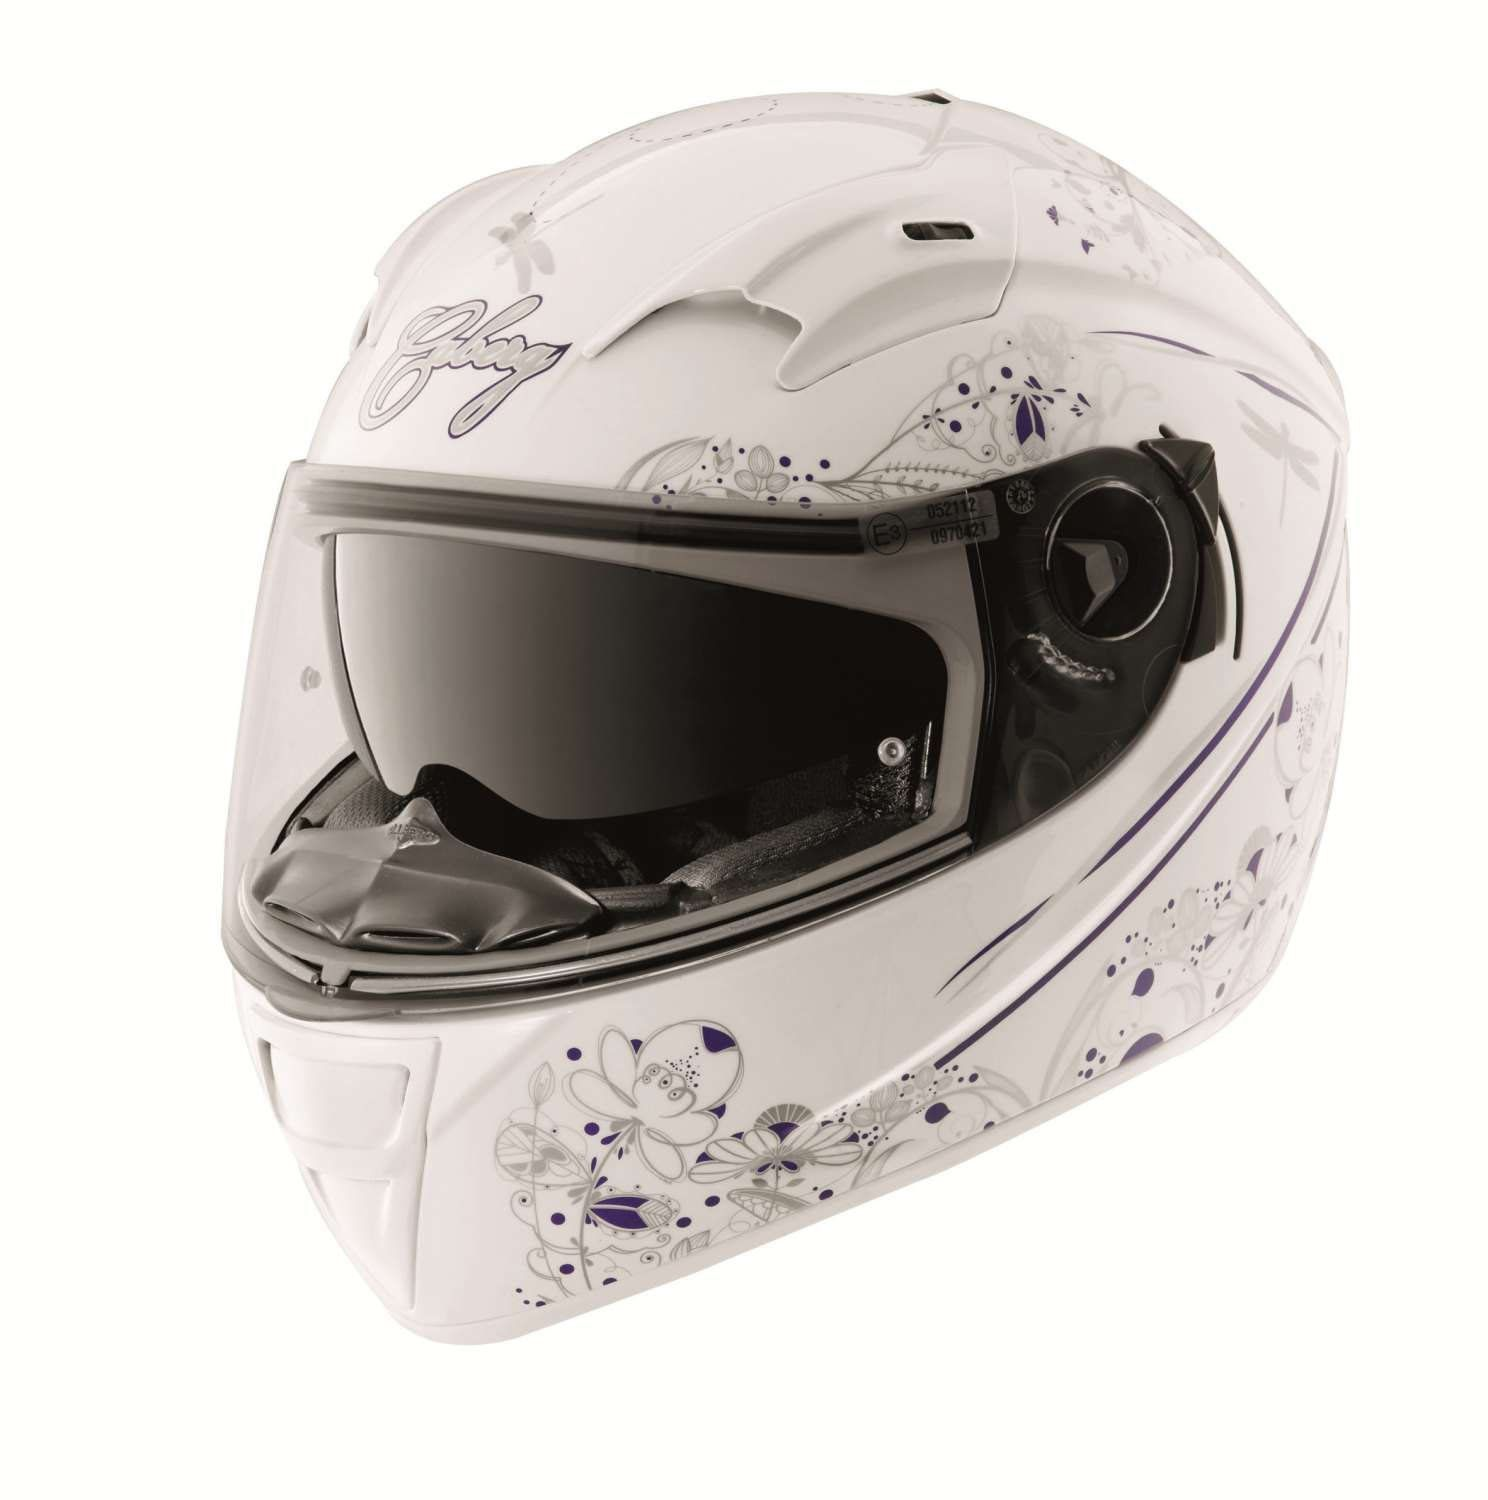 Caberg Vox Romantik White/Multi X-Small Helmet: Amazon.co.uk: Car & Motorbike